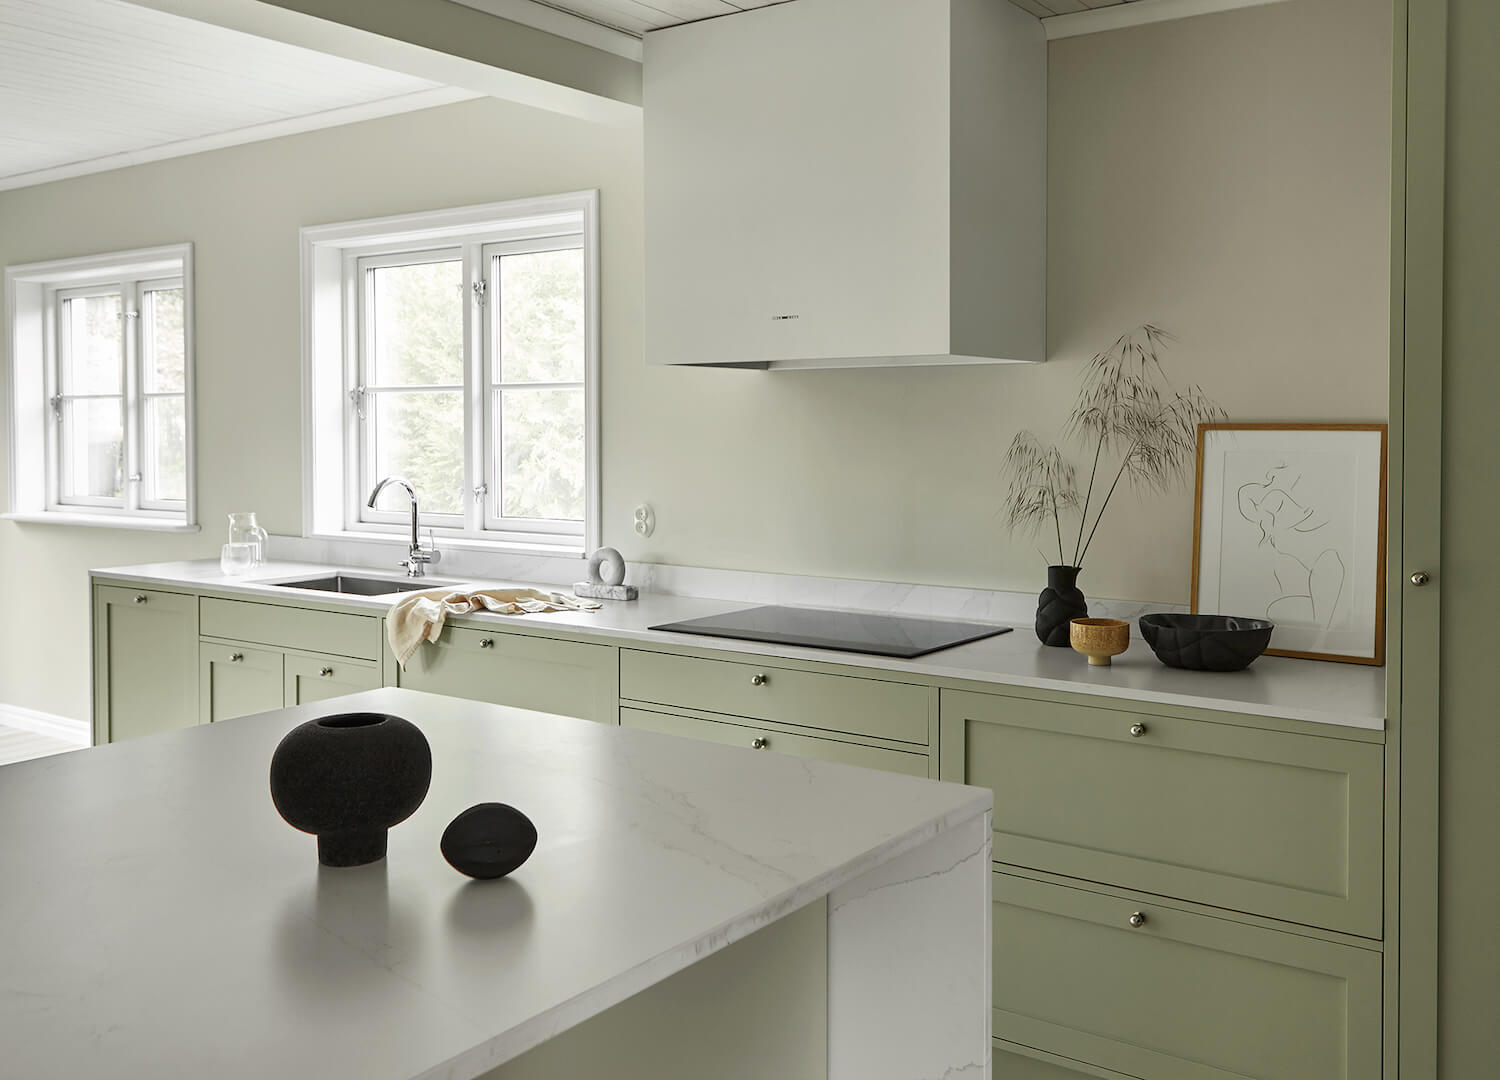 est living nordic style kitchen nordiska kok stylein kitchen island